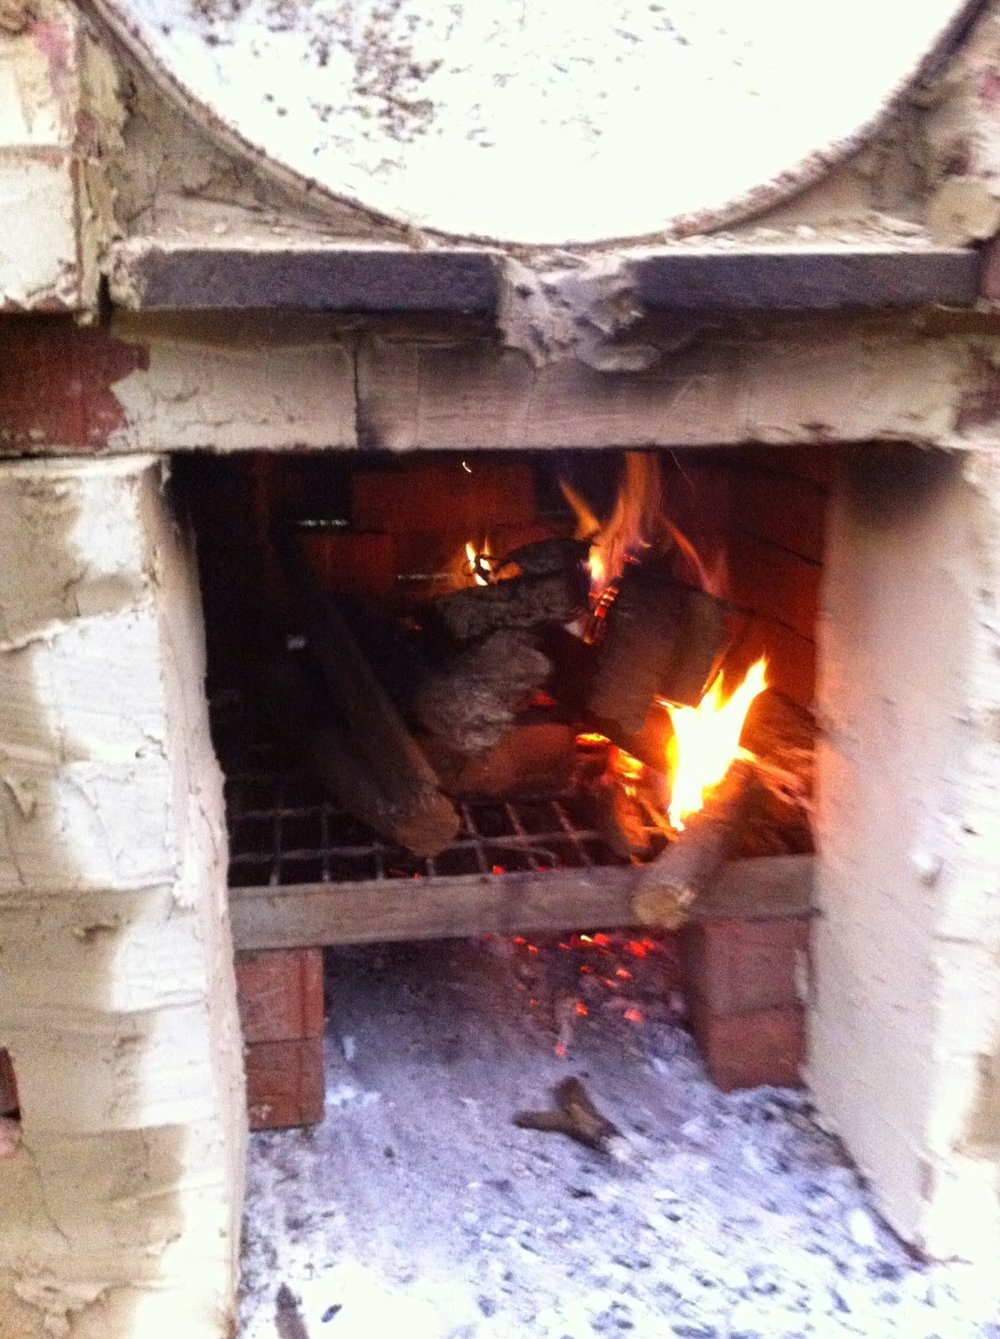 A blurry prototype Barrel oven is fired up for the first time.